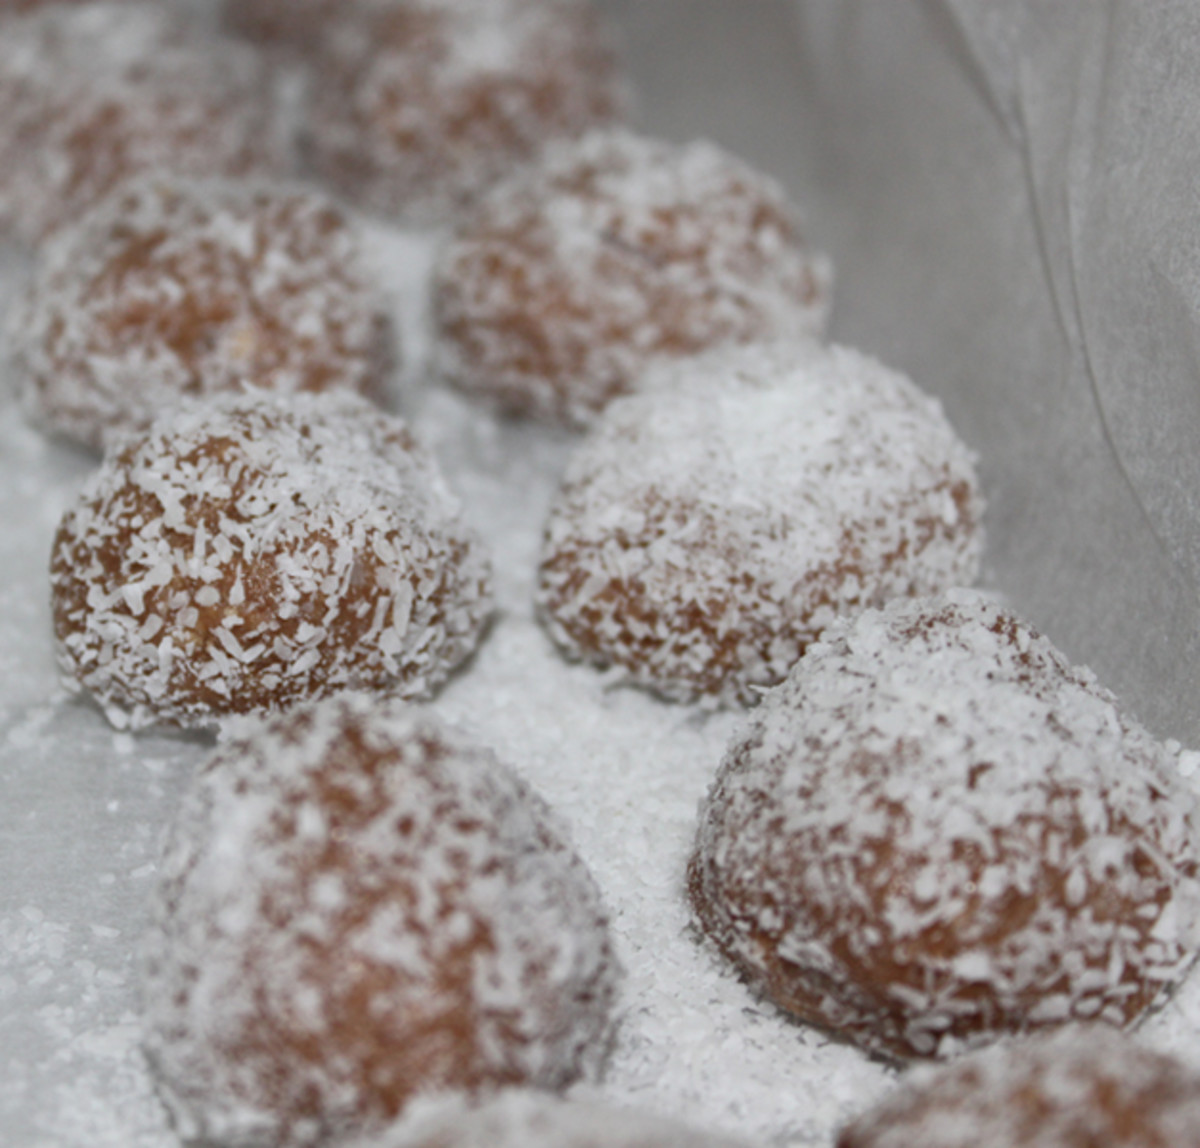 How To Make Rum Balls.  Rum Balls Recipe No Cooking , No Baking  Recipe. A Great Christmas, Festive Season Treat !